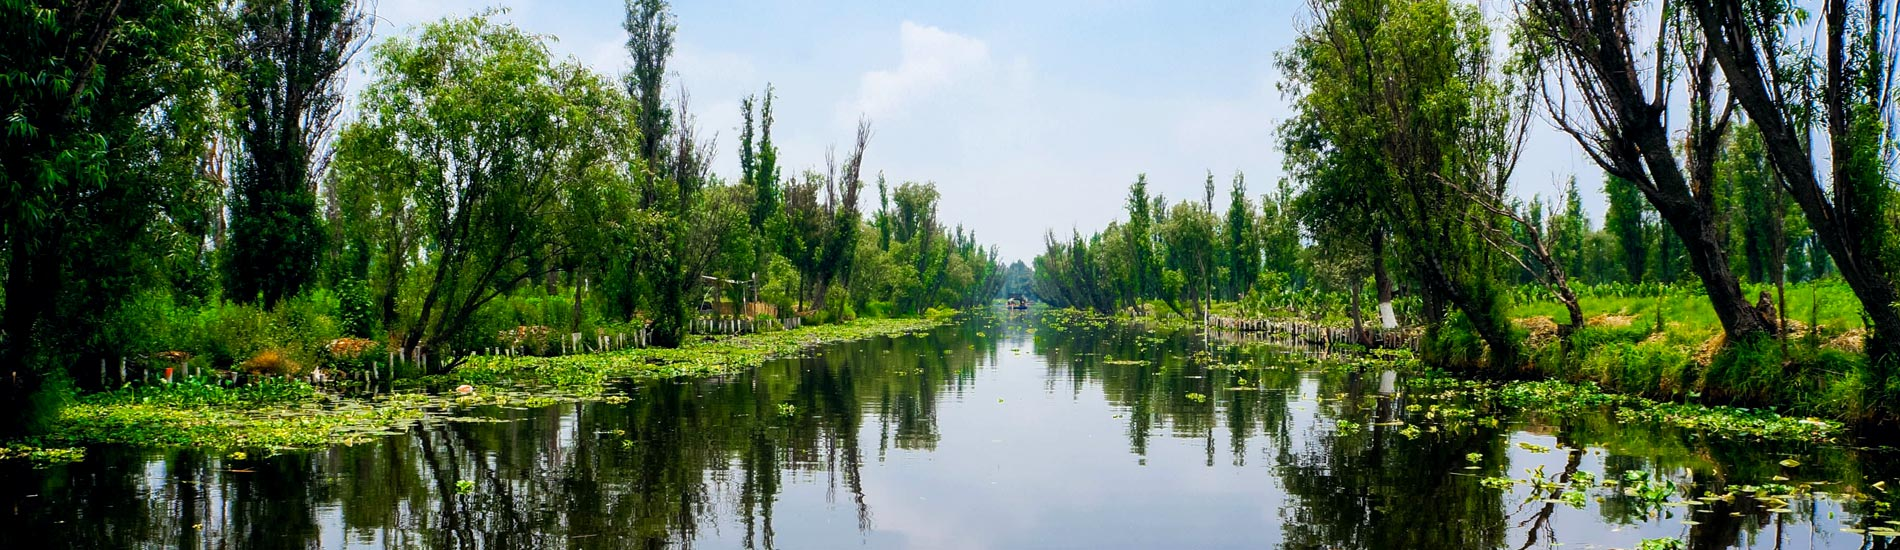 Axolotls And Chinampas In Xochimilco Nature Conservation Experience